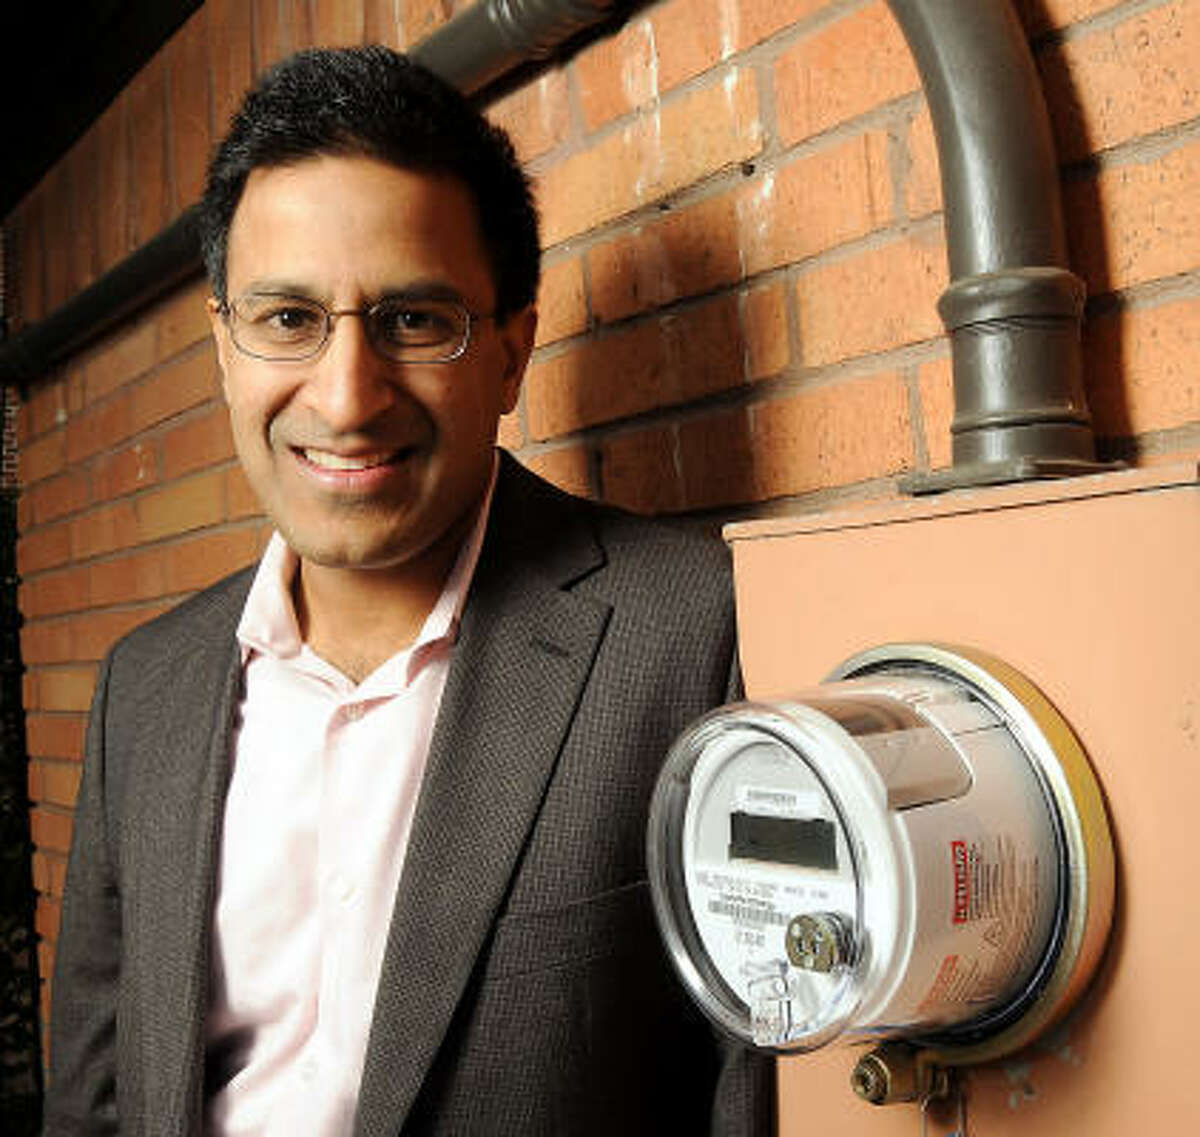 Rakesh Agrawal wants to seeing how CenterPoint's smart meter, above, compares with the system he installed himself. The data from his system has led him to switch to fluorescent bulbs.